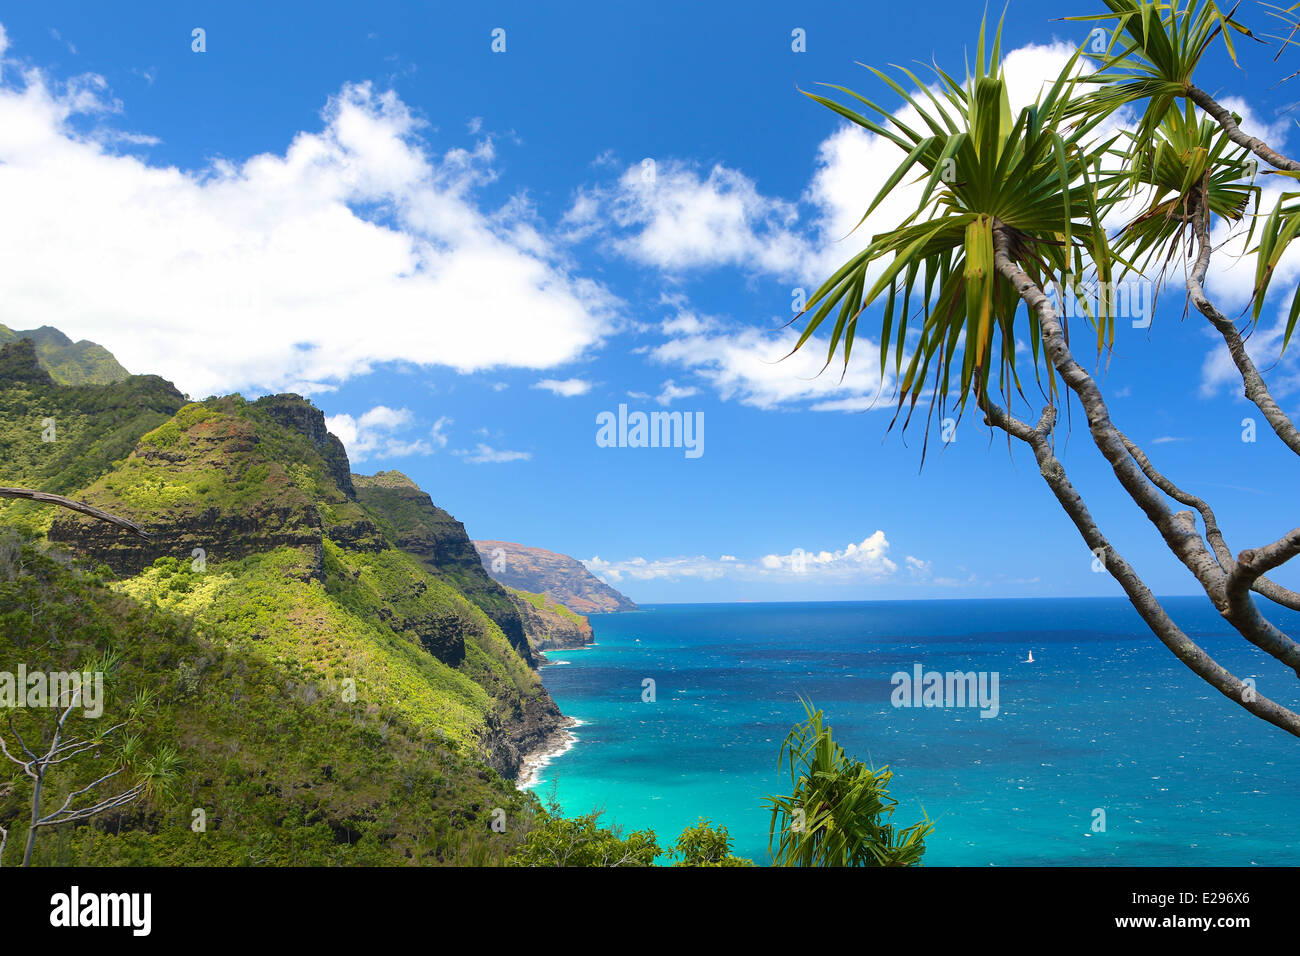 The beautiful Na Pali coast on north shore of Kauai, the Garden Isle of Hawaii, from the Kalalau Trail - Stock Image